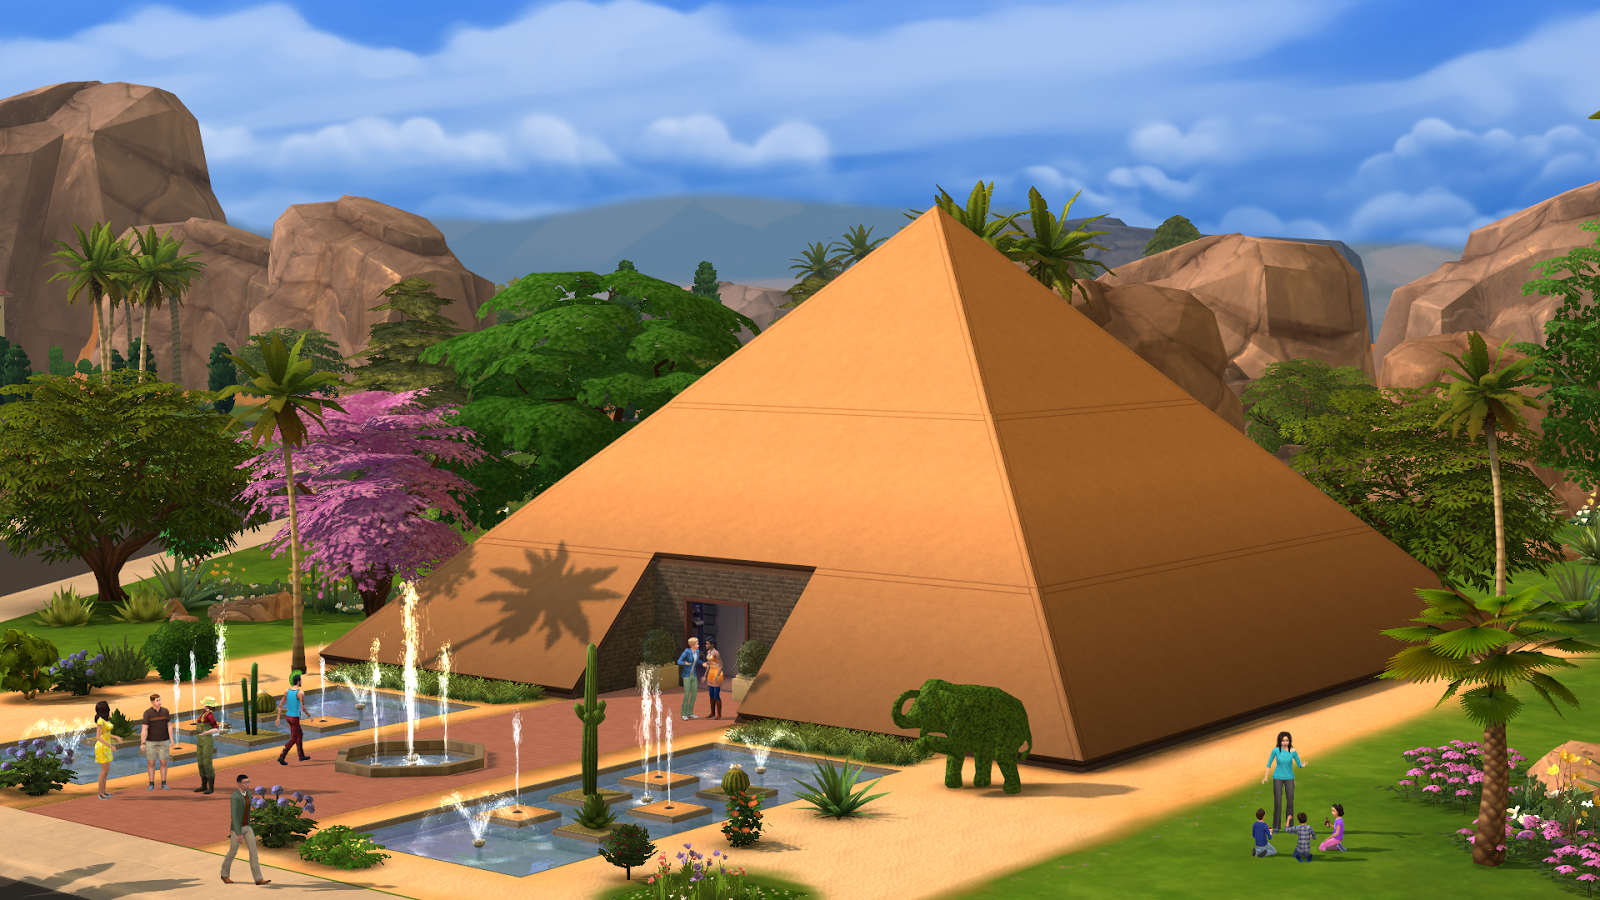 screenshots showing the weird and wonderful world of the sims 4